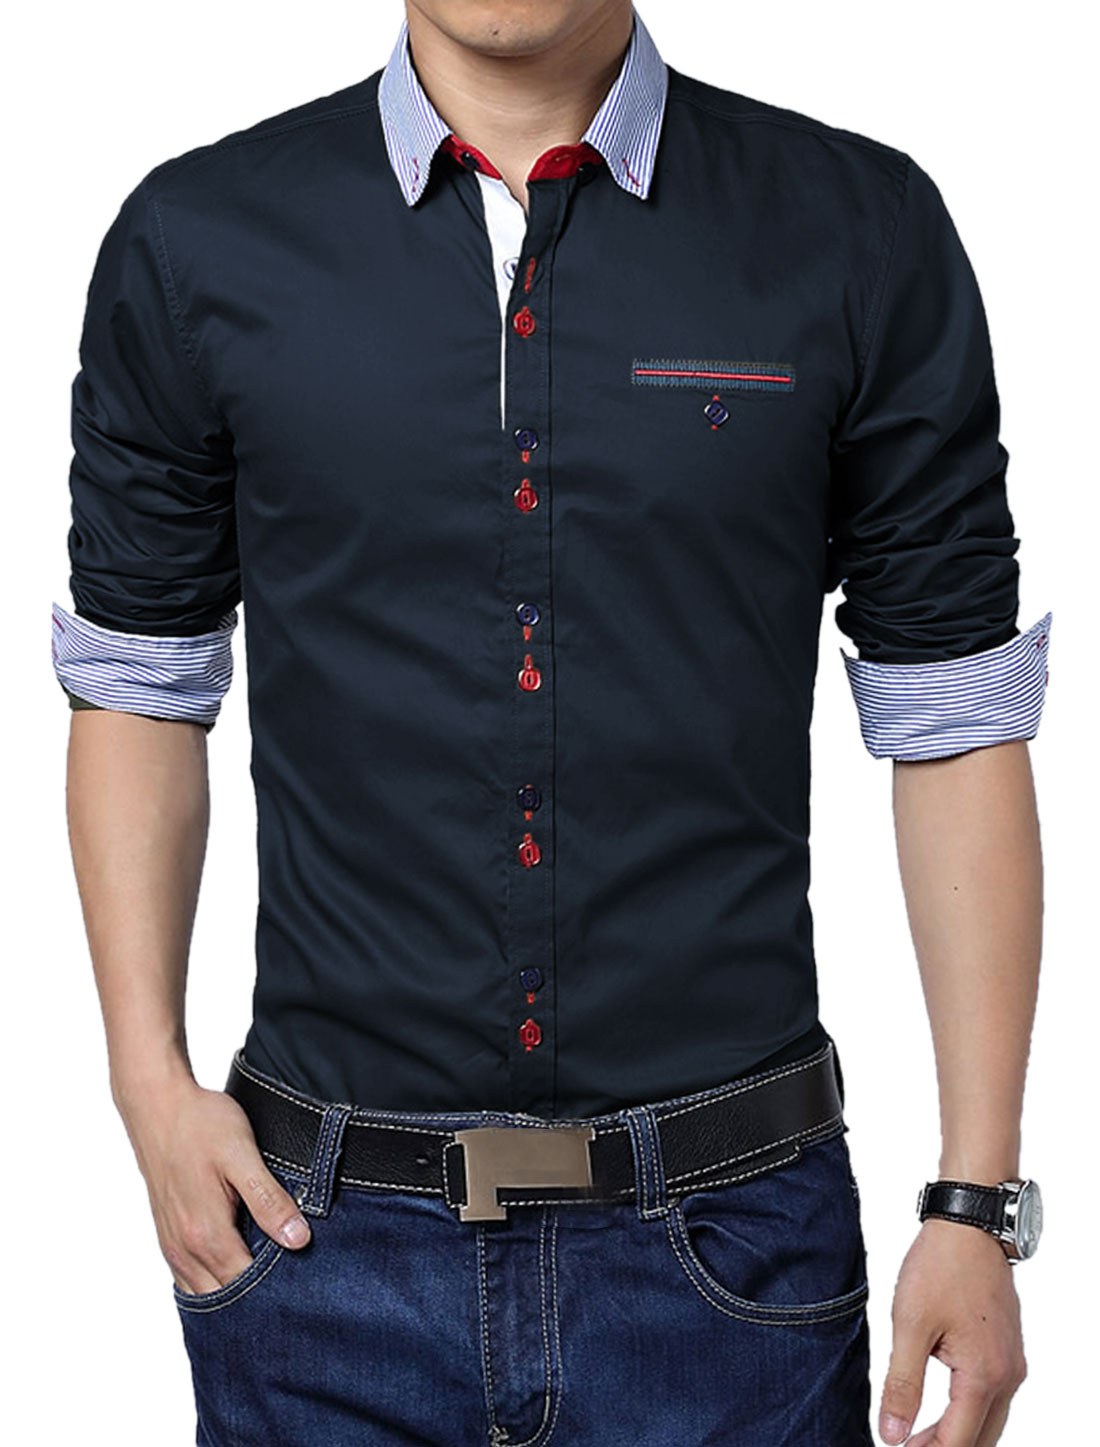 Men Button-Up Stripes Pattern Slim Fit Top Shirt Navy Blue L